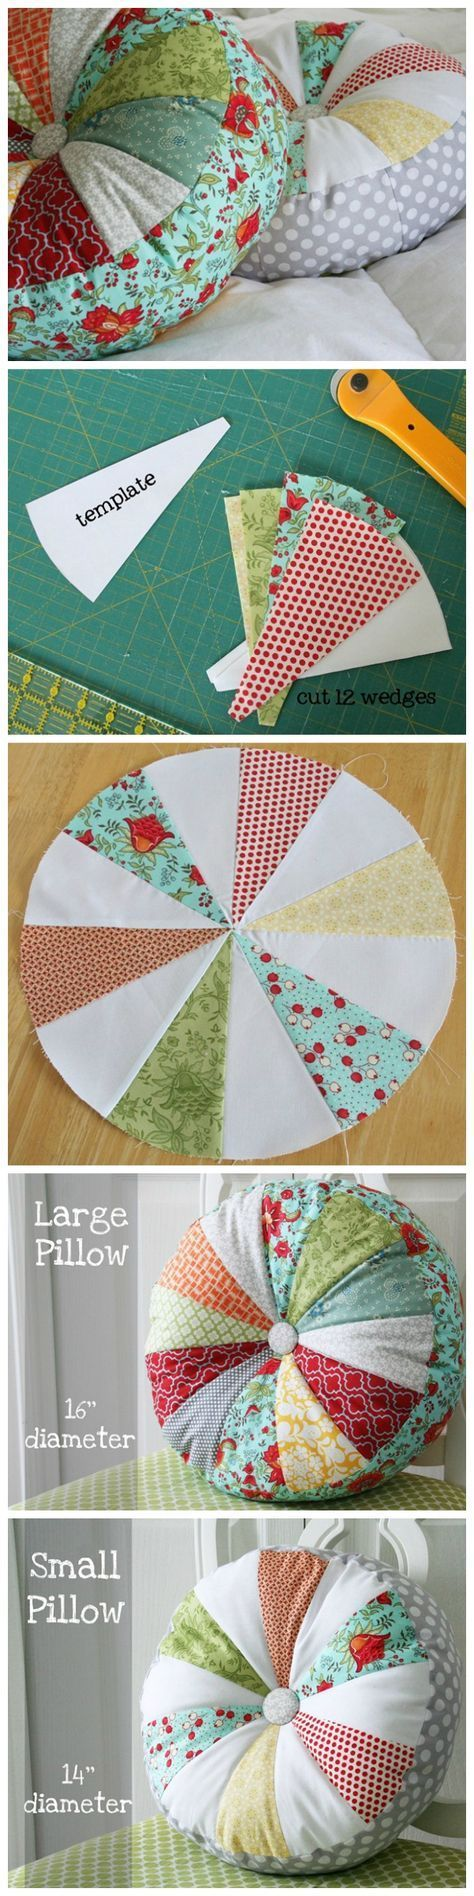 DIY Sprocket Pillows Tutorial and template to downlod